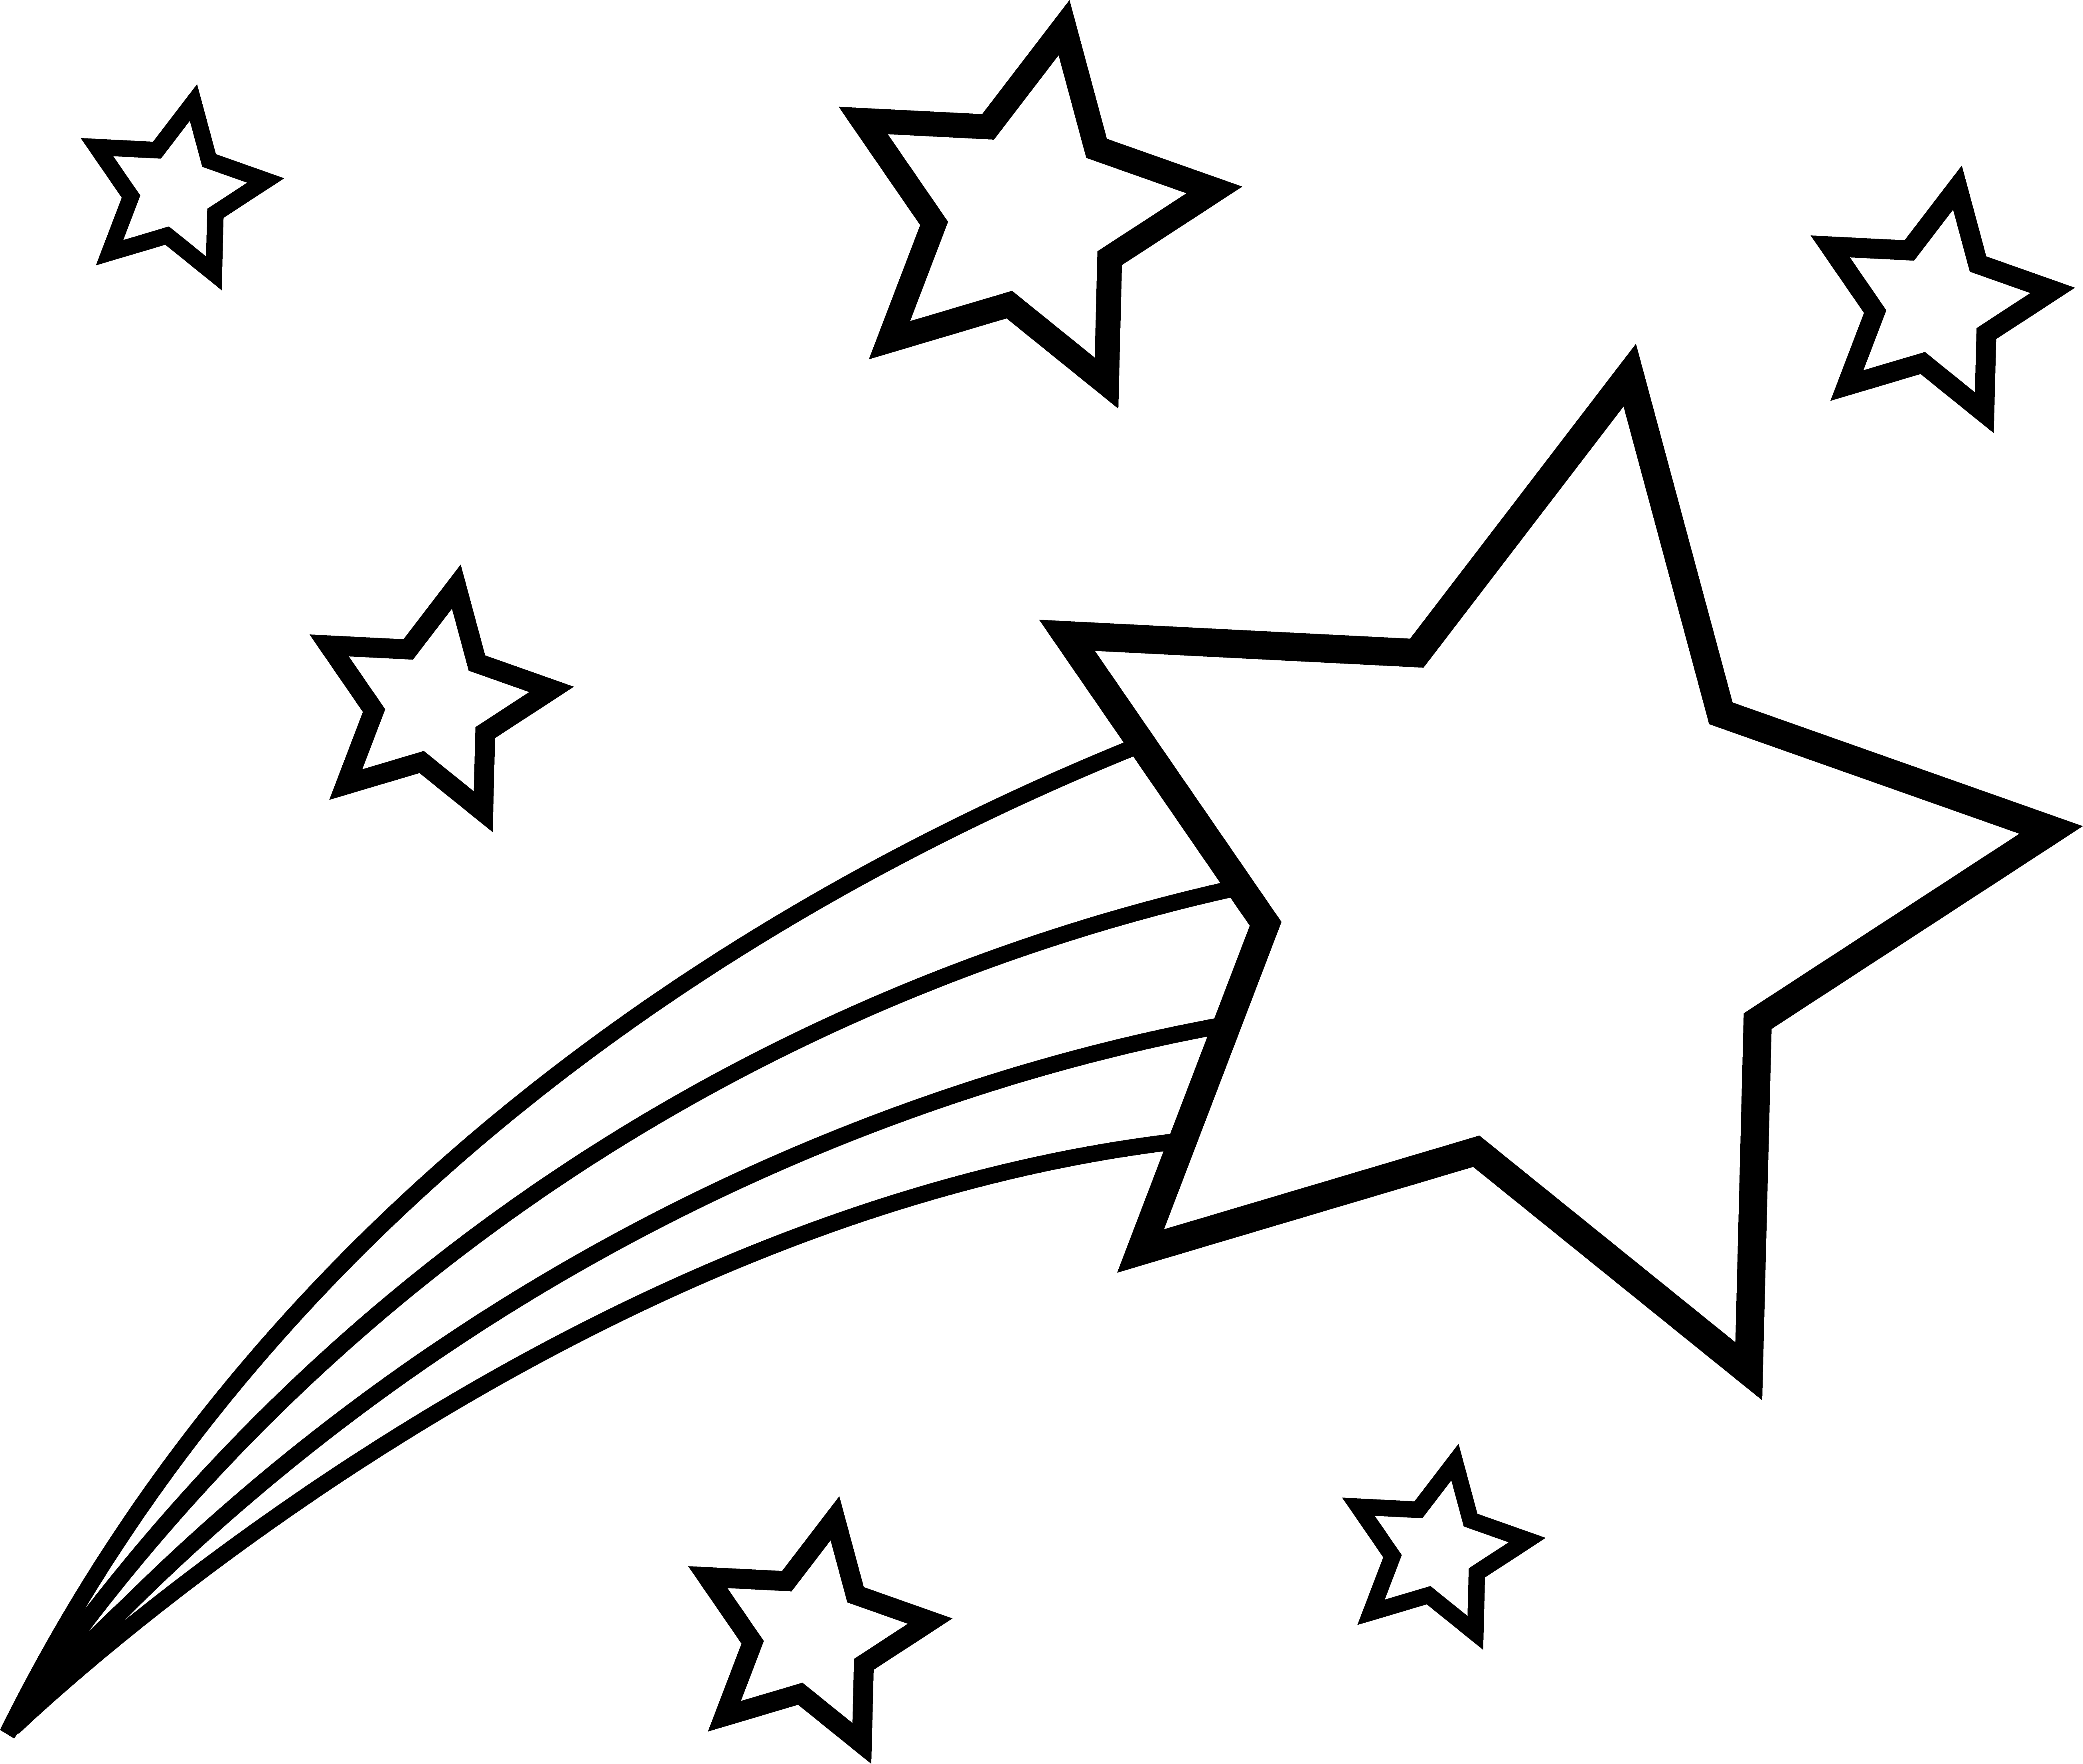 clipart black and white download Shooting star outline to. Sun moon stars clipart black and white